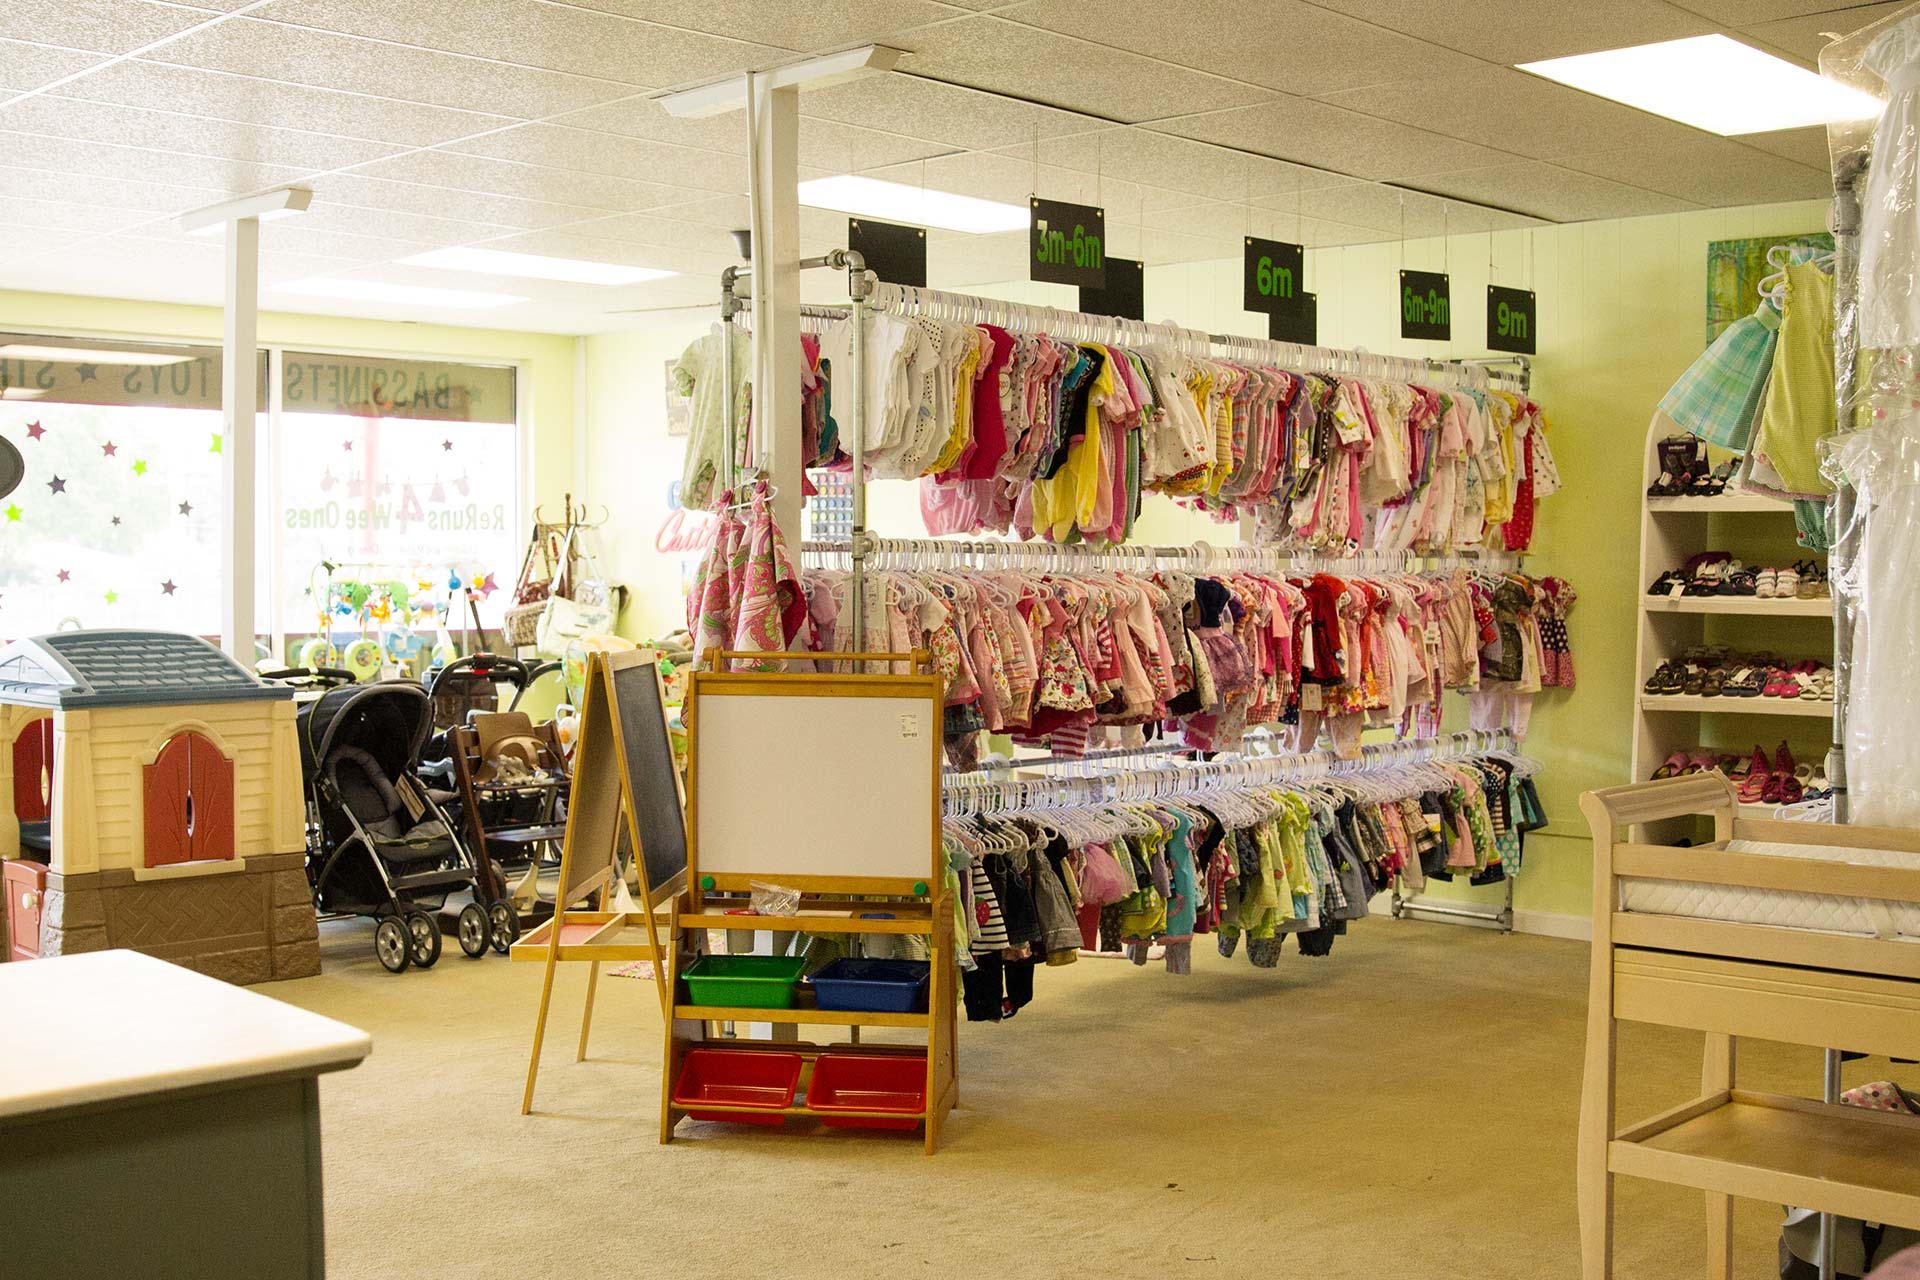 Children's Consignment Store Niceville, FL